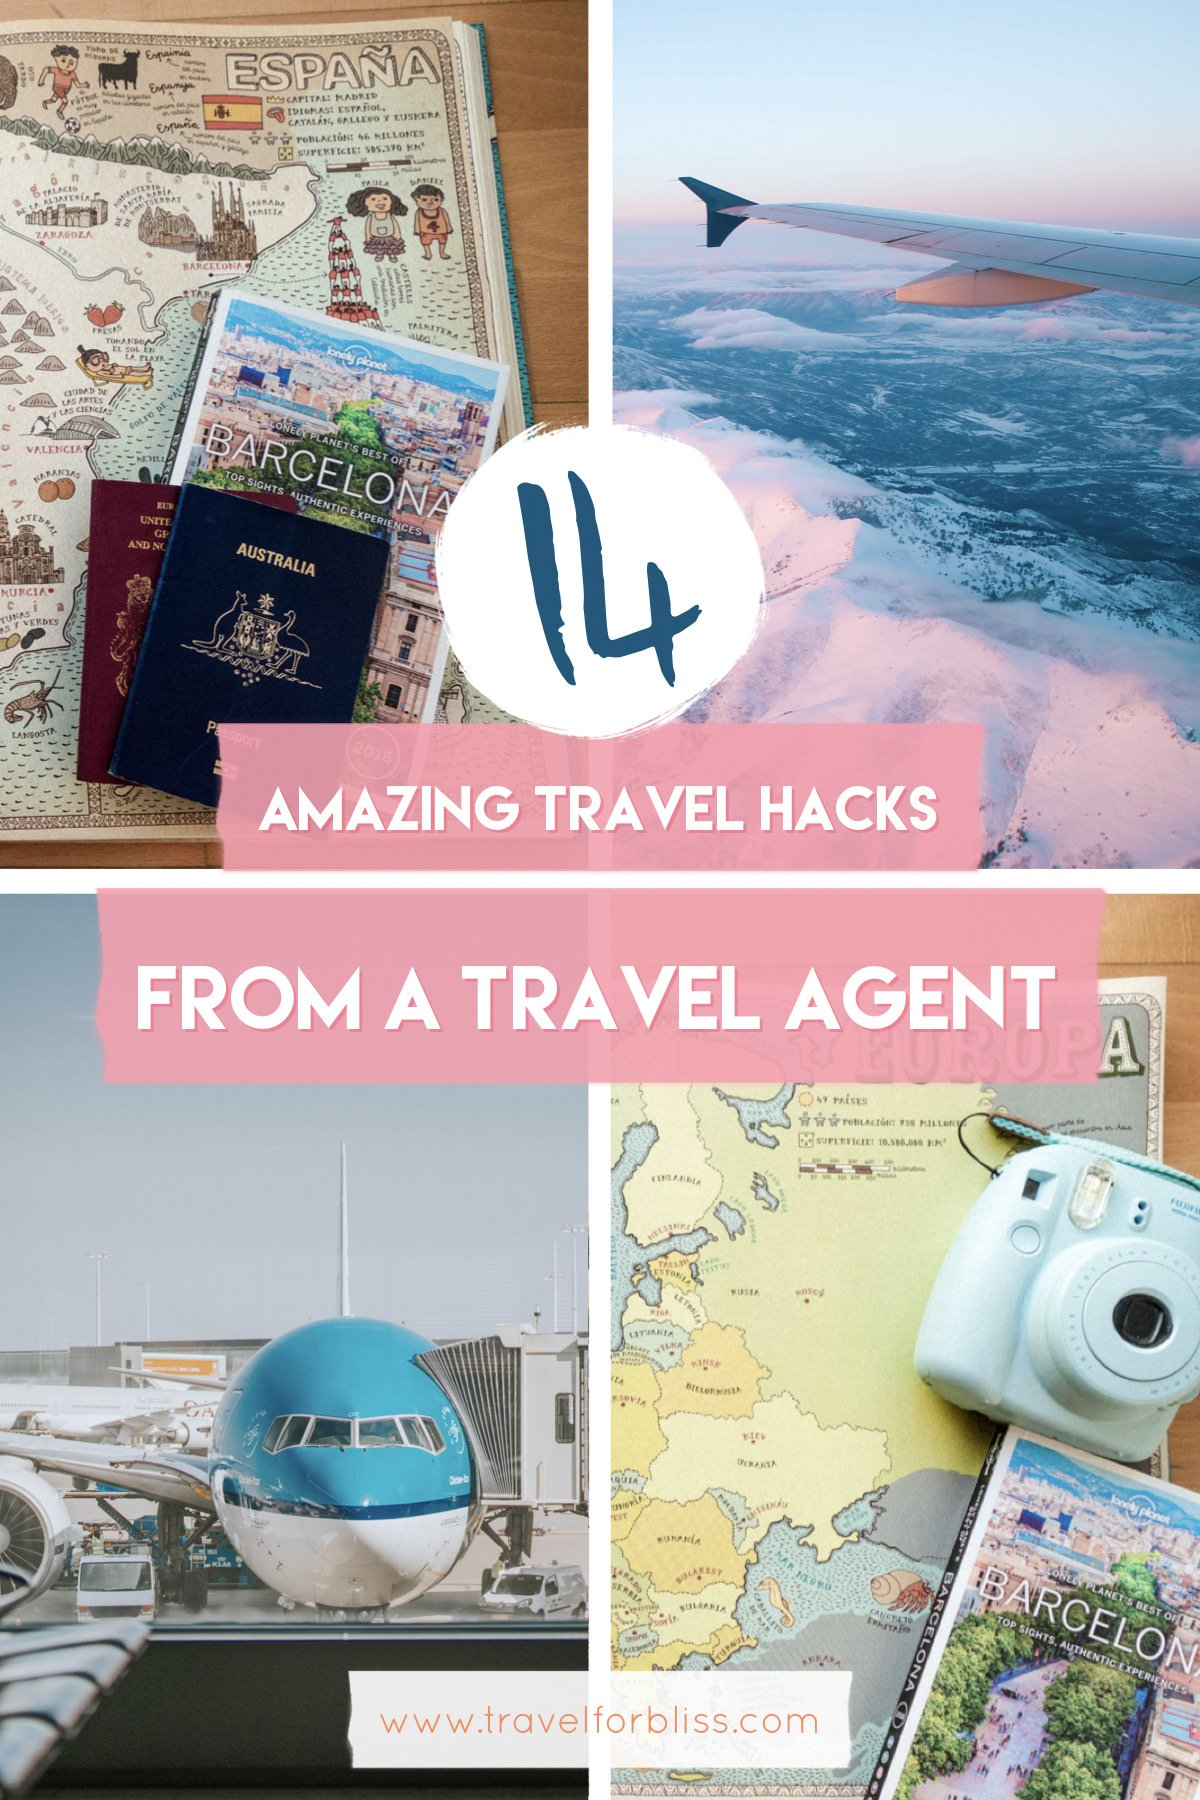 14 Amazing Travel Hacks From A Travel Agent